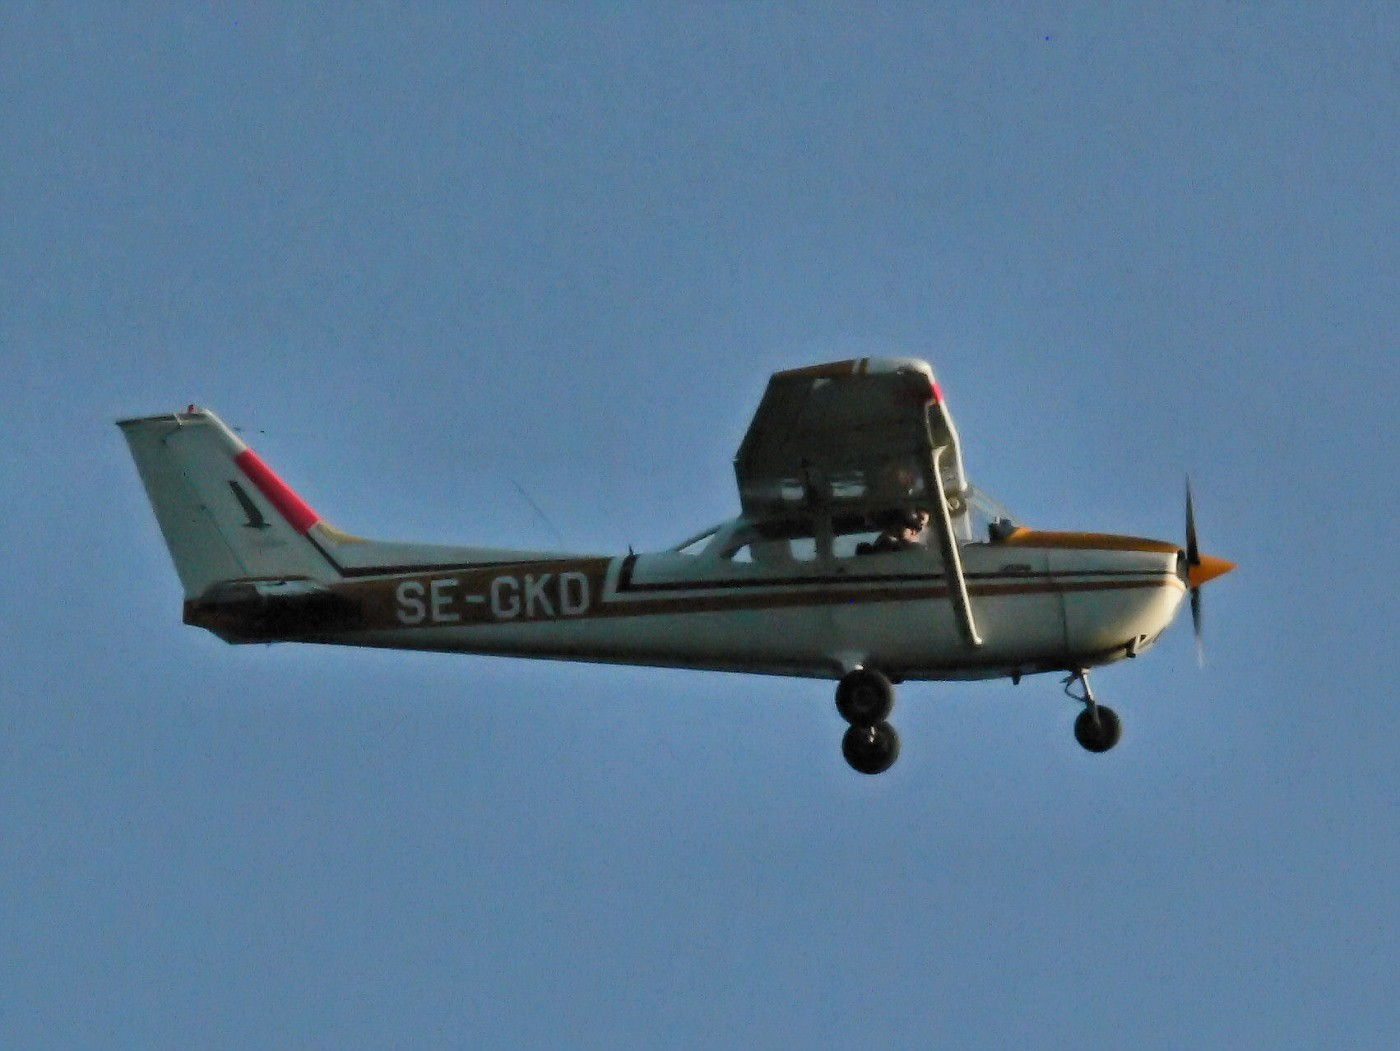 2008 07 29 Henry Norrby flies over our house 5